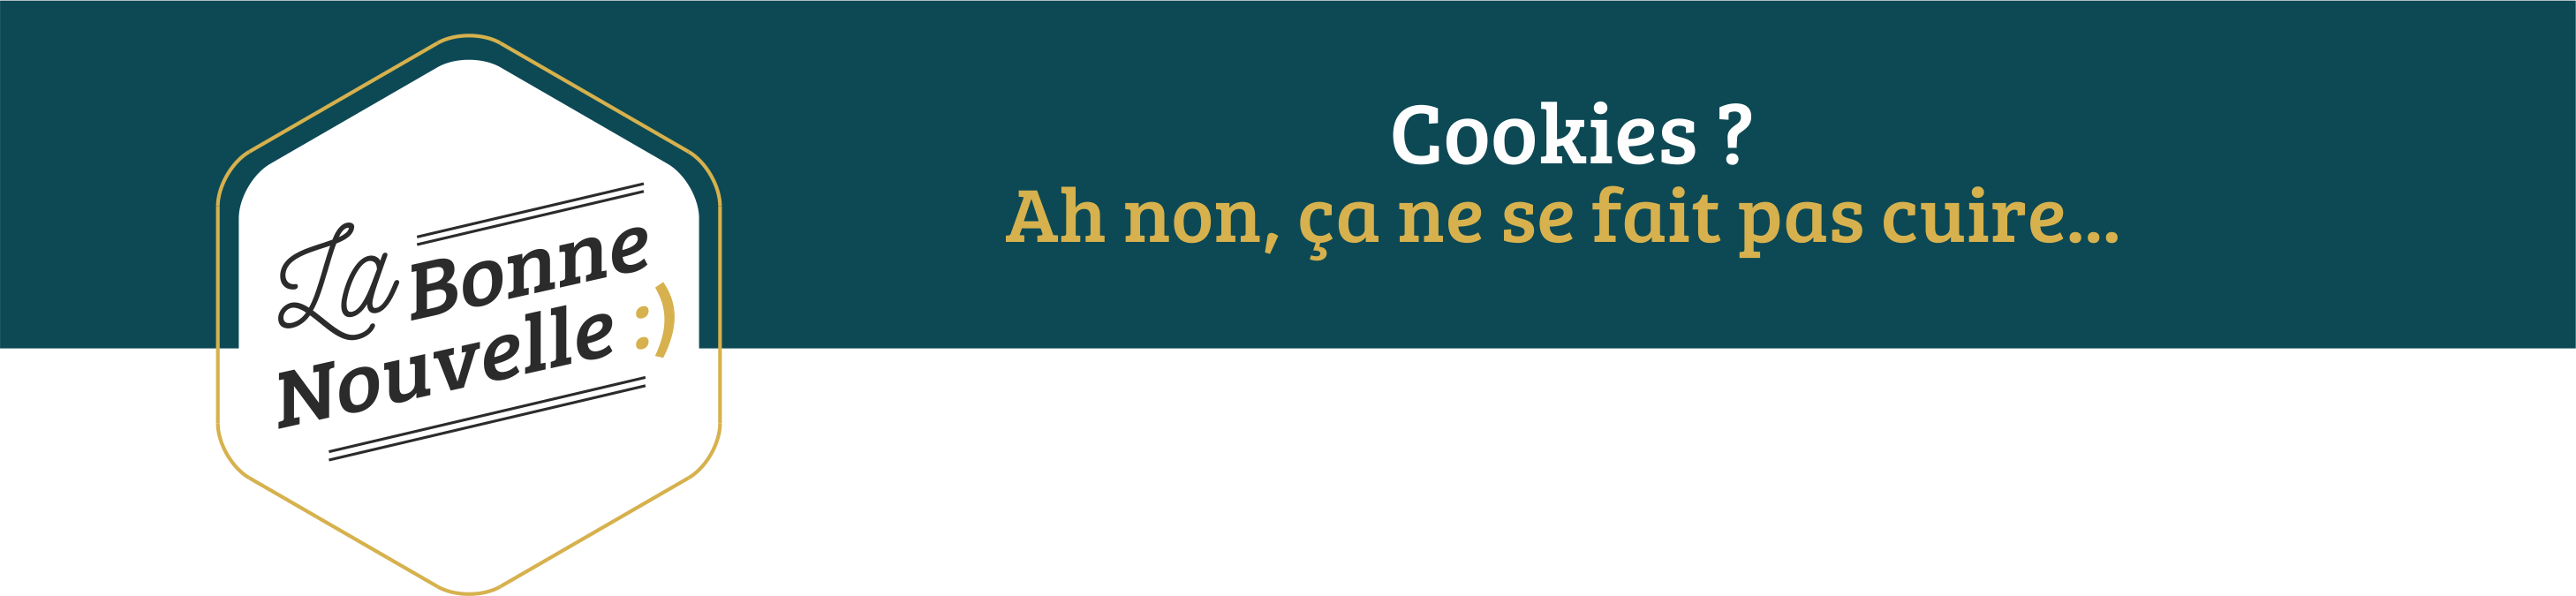 infographie juridique Juste Cause cookies